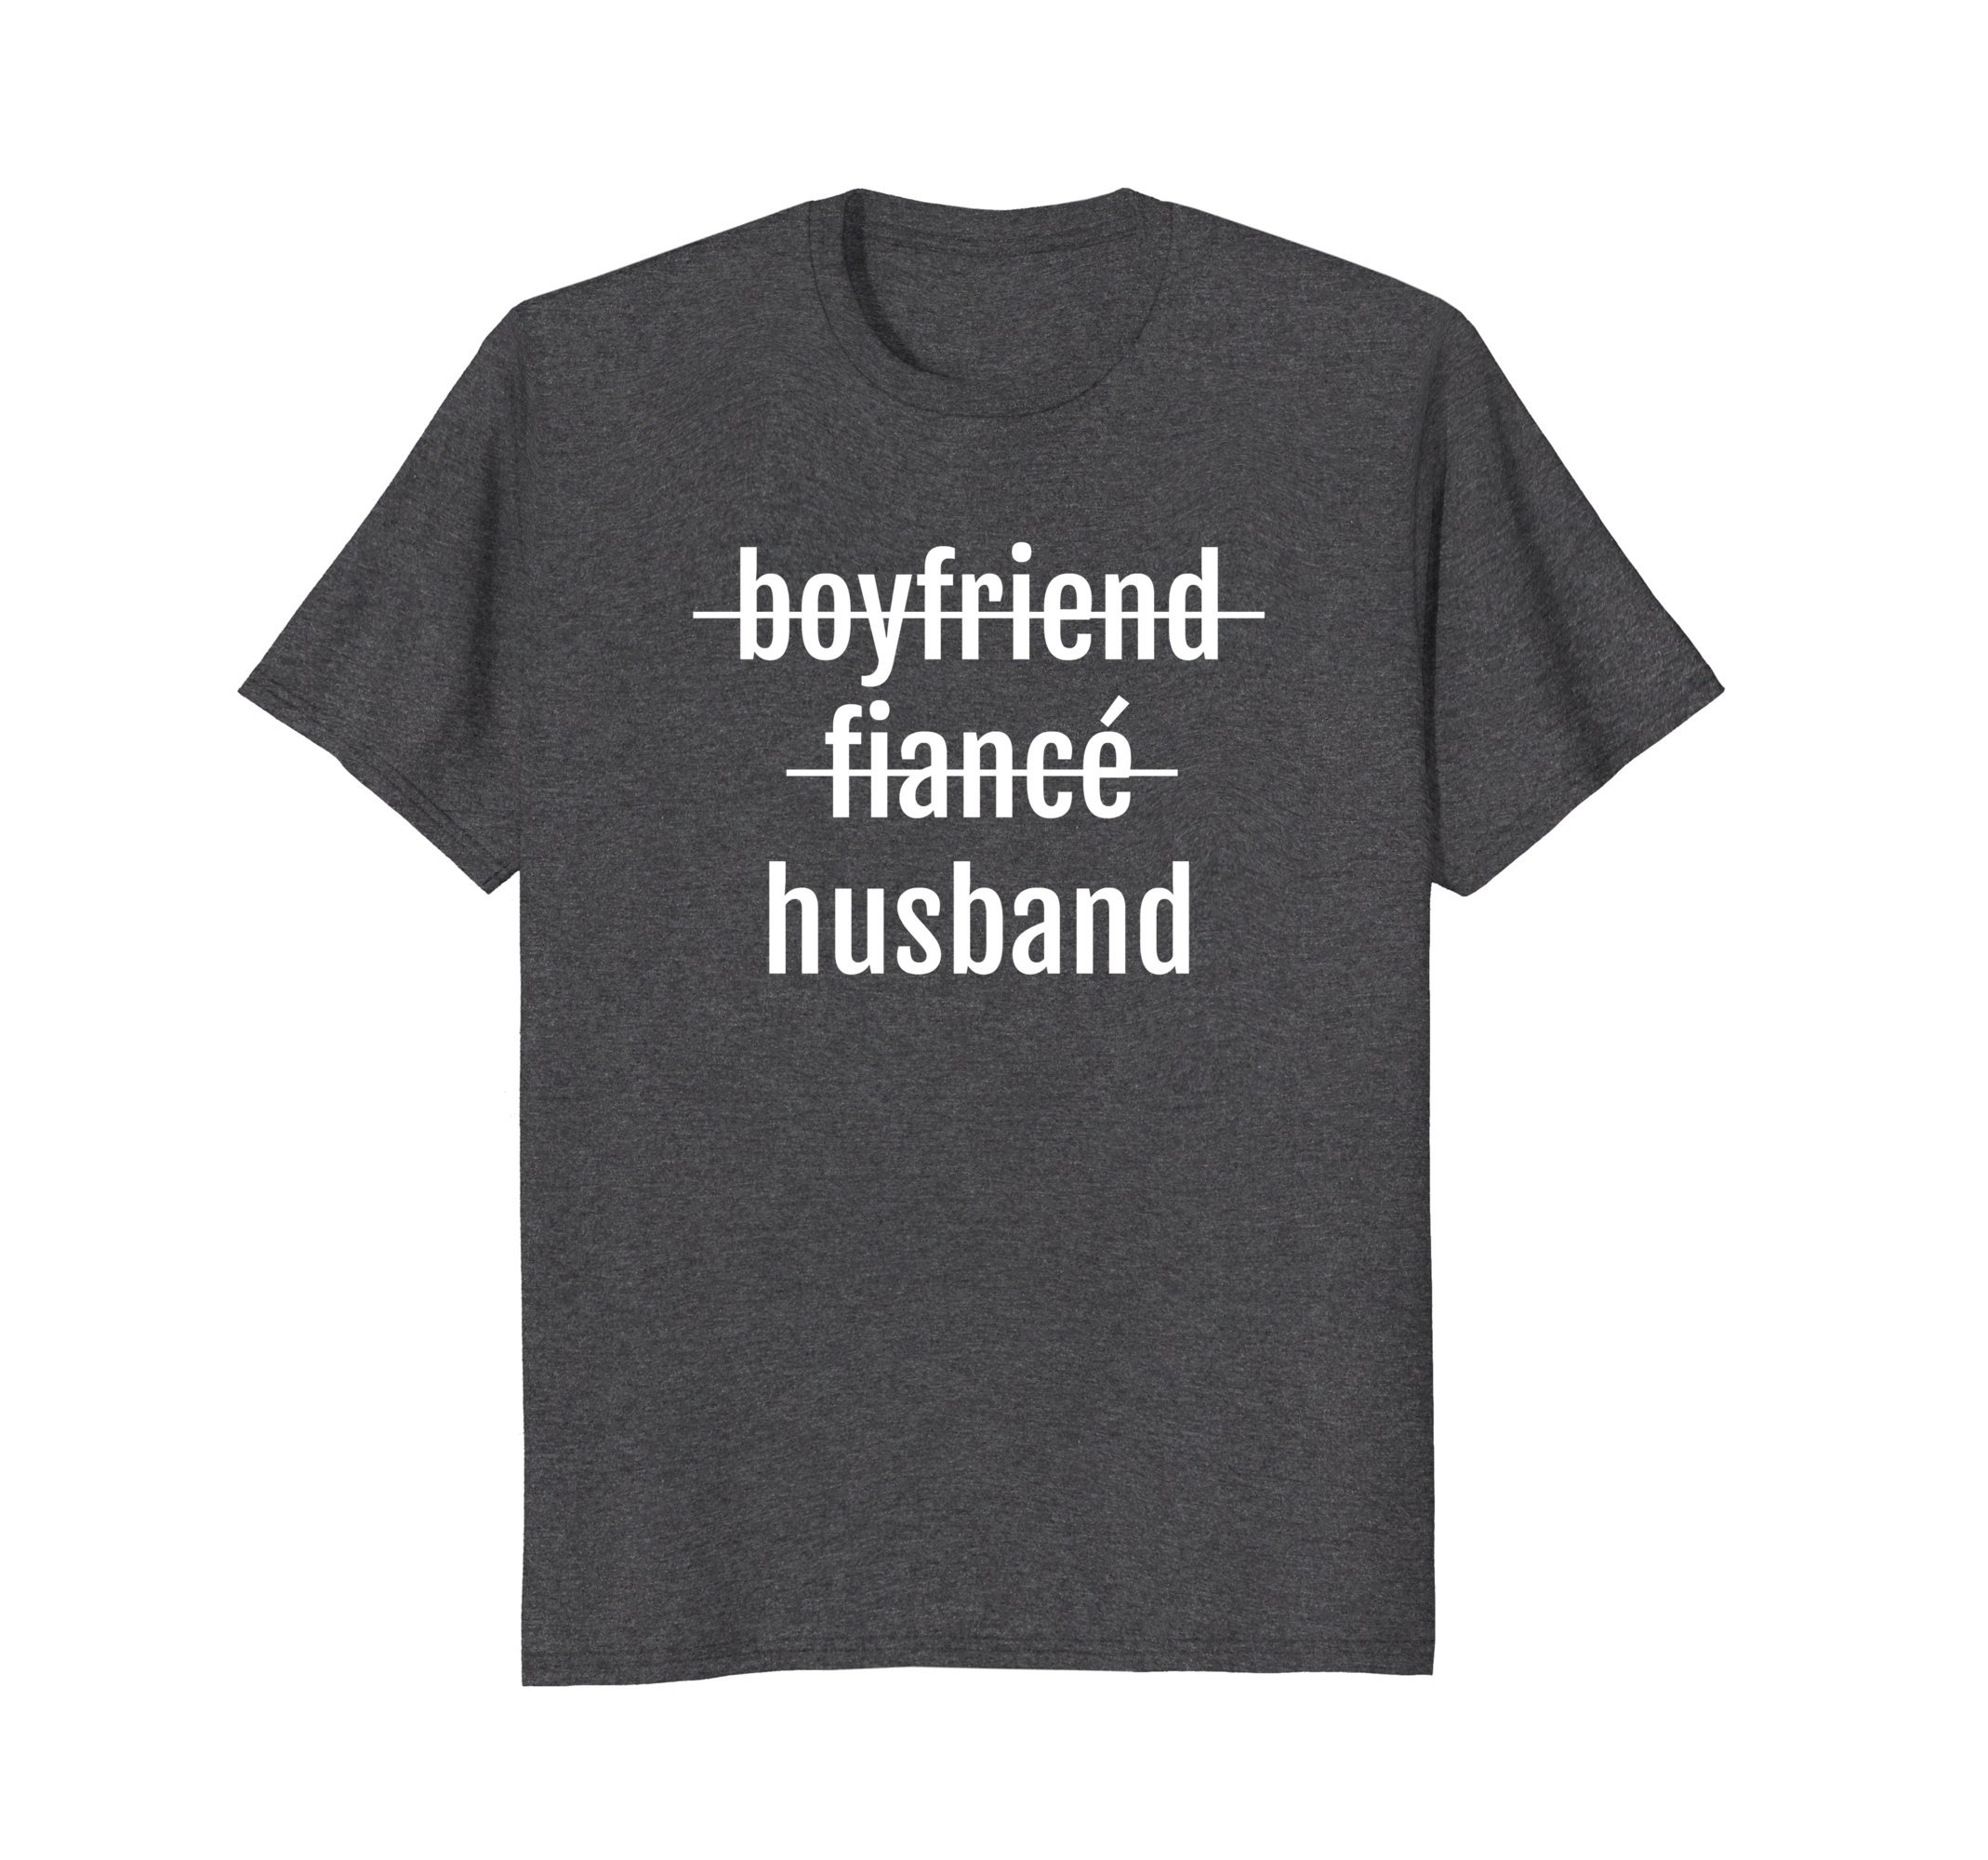 Mens Just Married Shirt Wedding Celebrate Husband Love Gift Groom 3XL Dark Heather